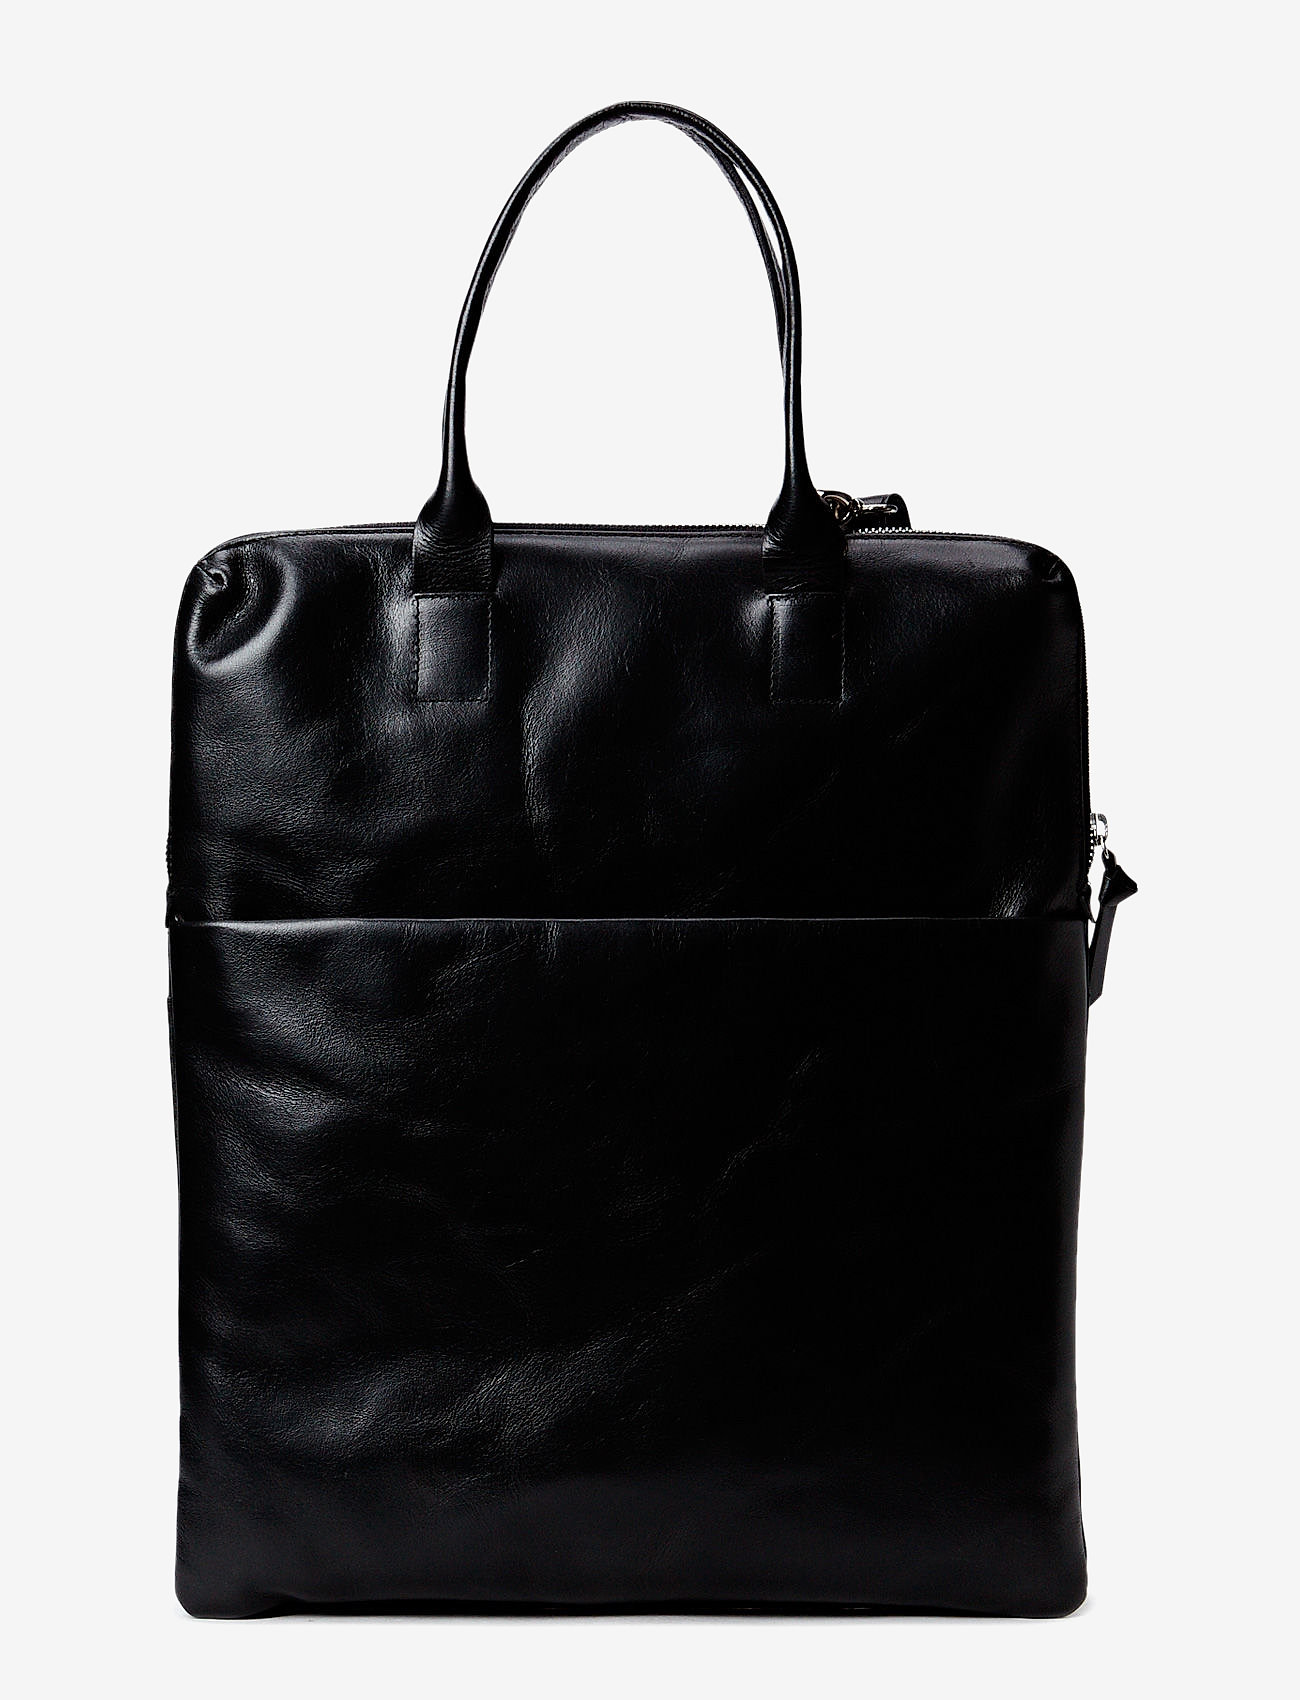 Royal RepubliQ - New Courier bag - black - 1